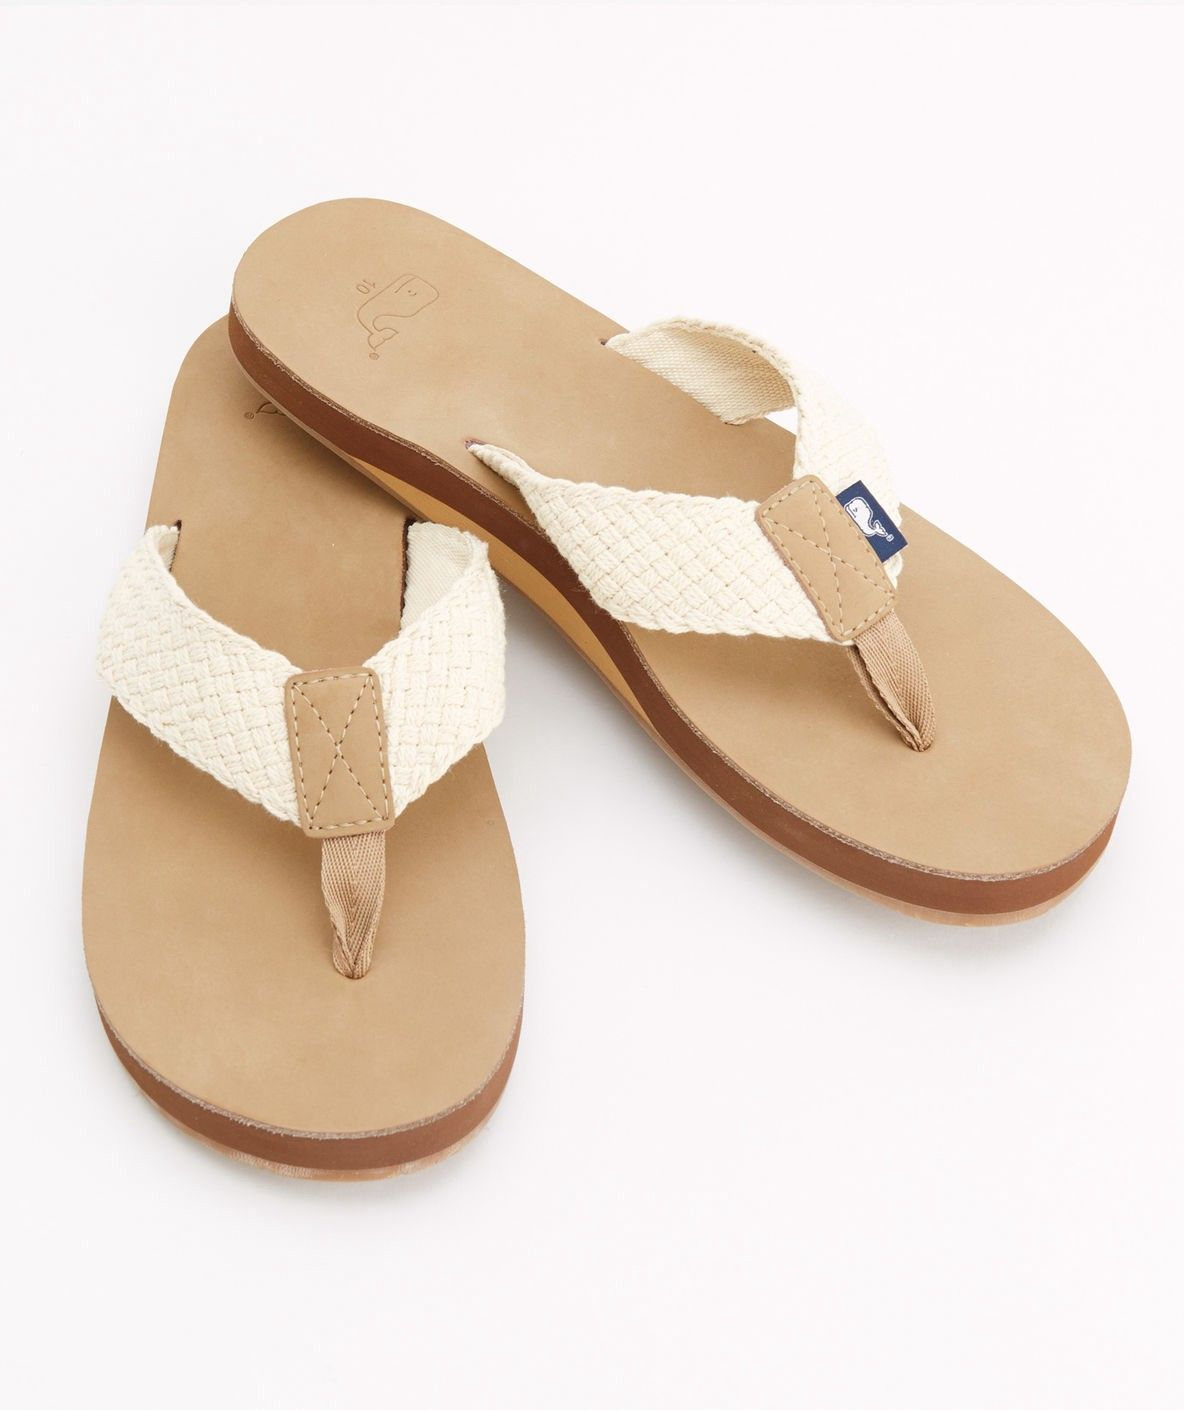 70dd56aba186e Leather Flip Flops With Washed Webbing by Vineyard Vines in 2018 ...